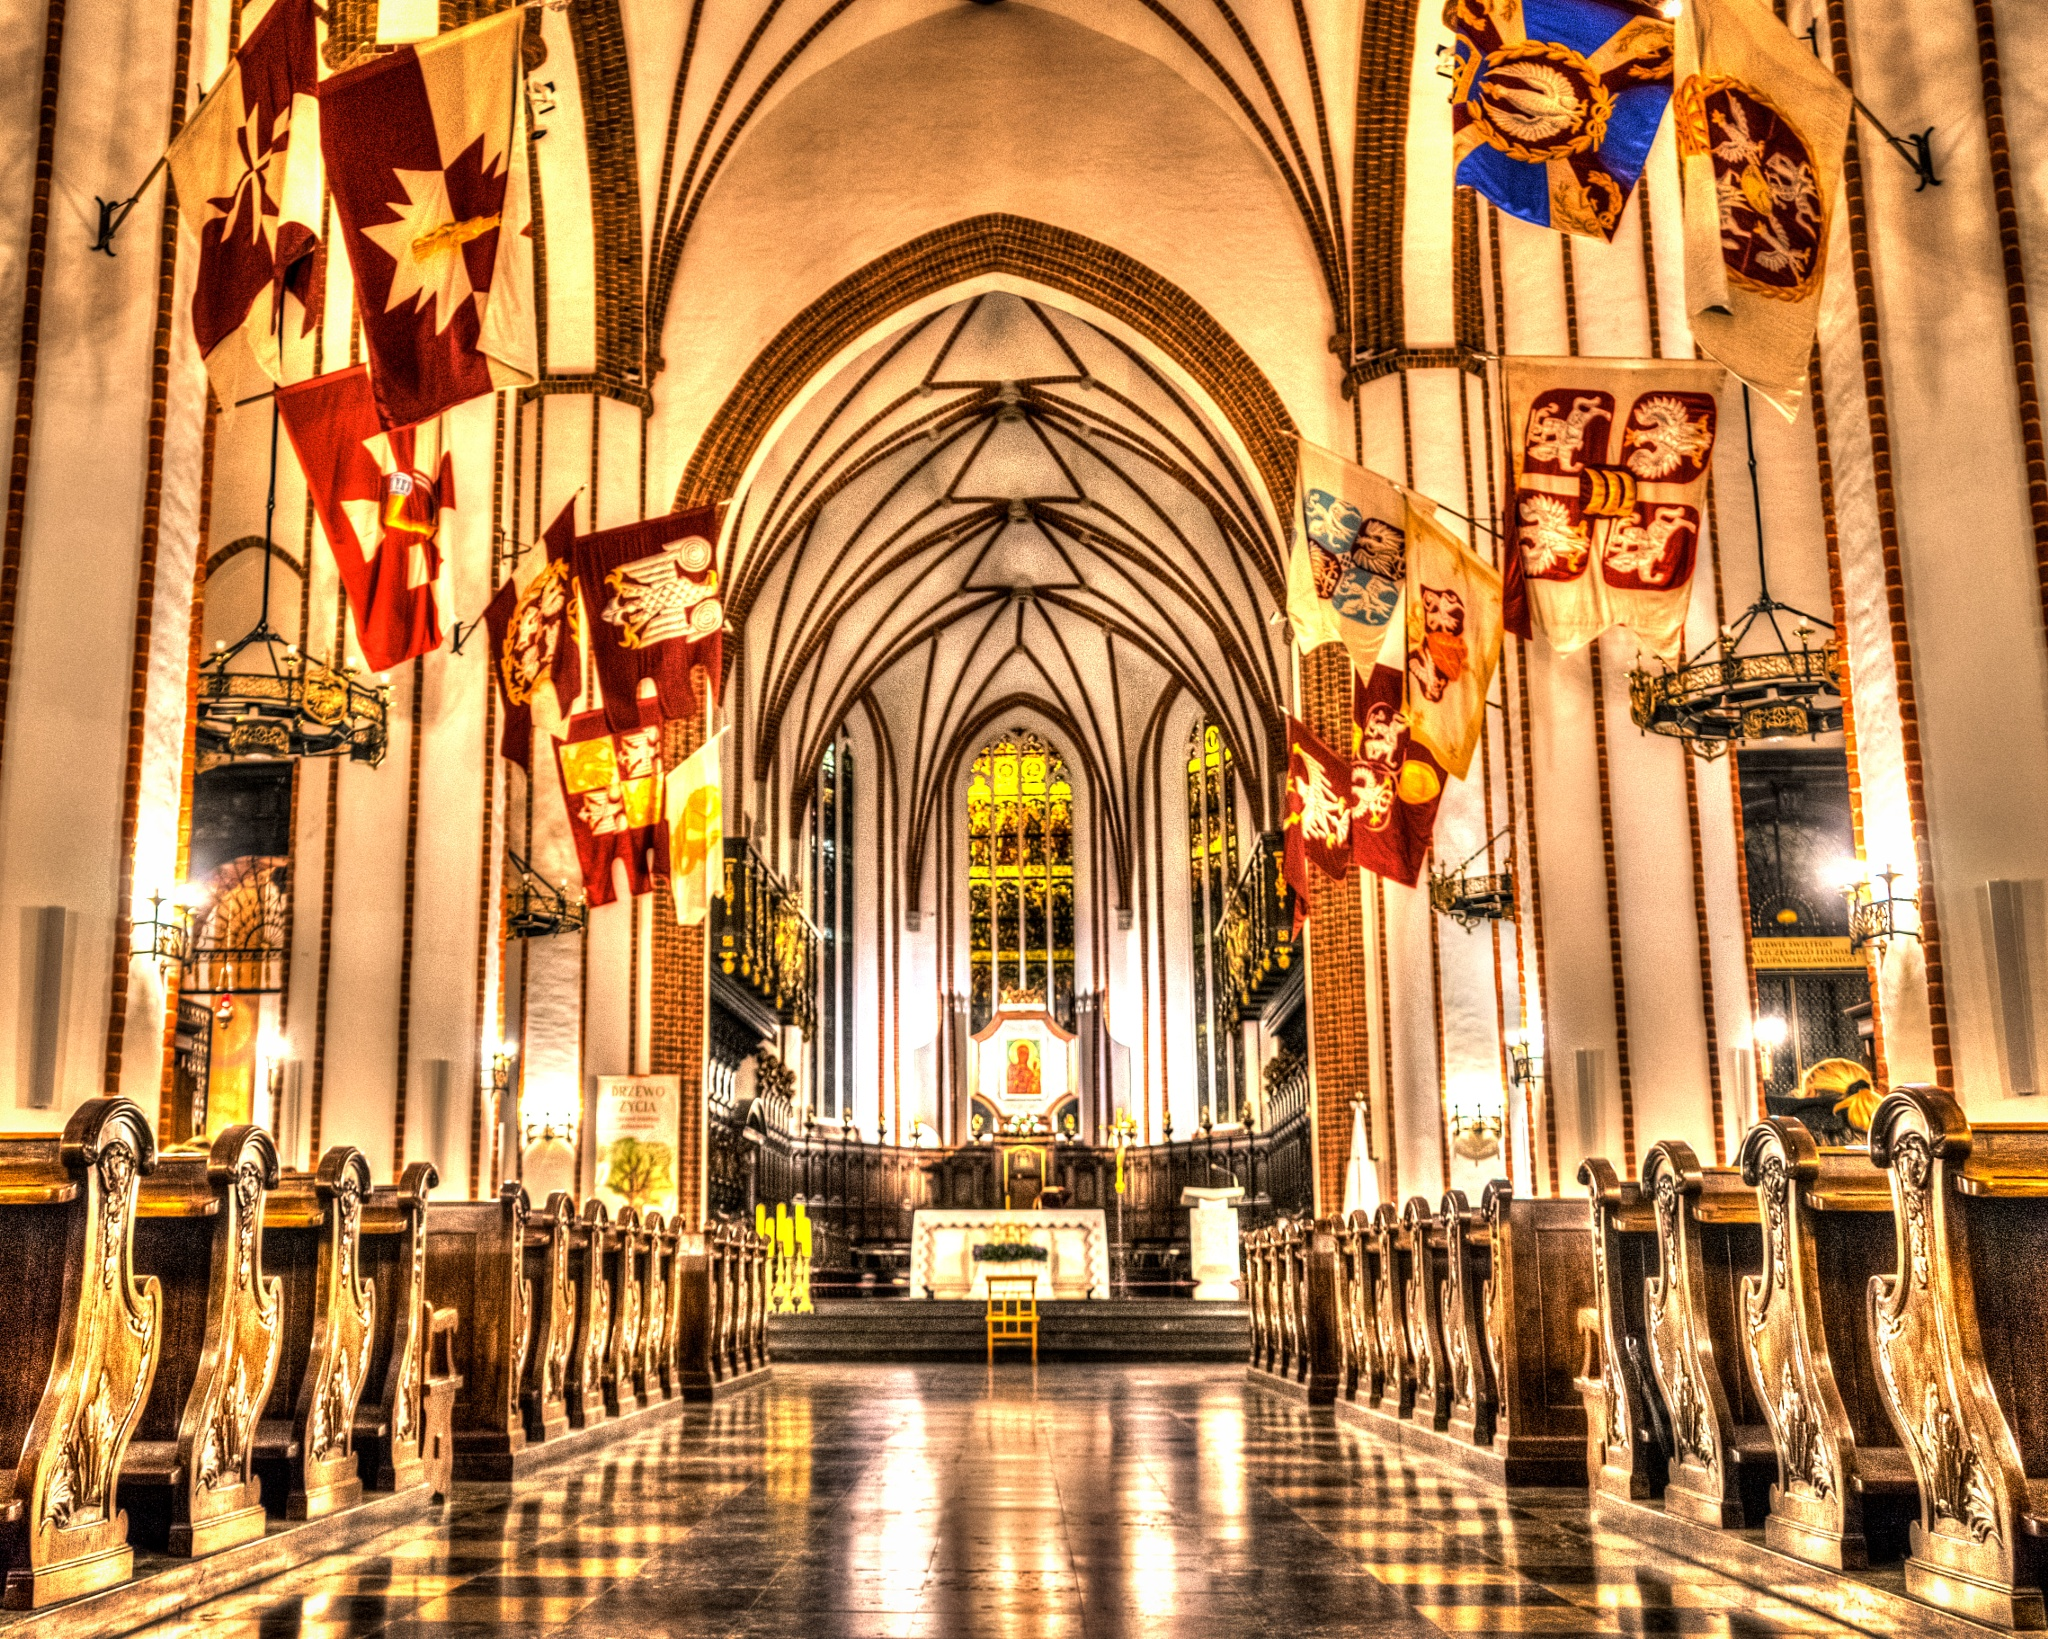 St. John's Archcathedral in Warsaw by jonathanr